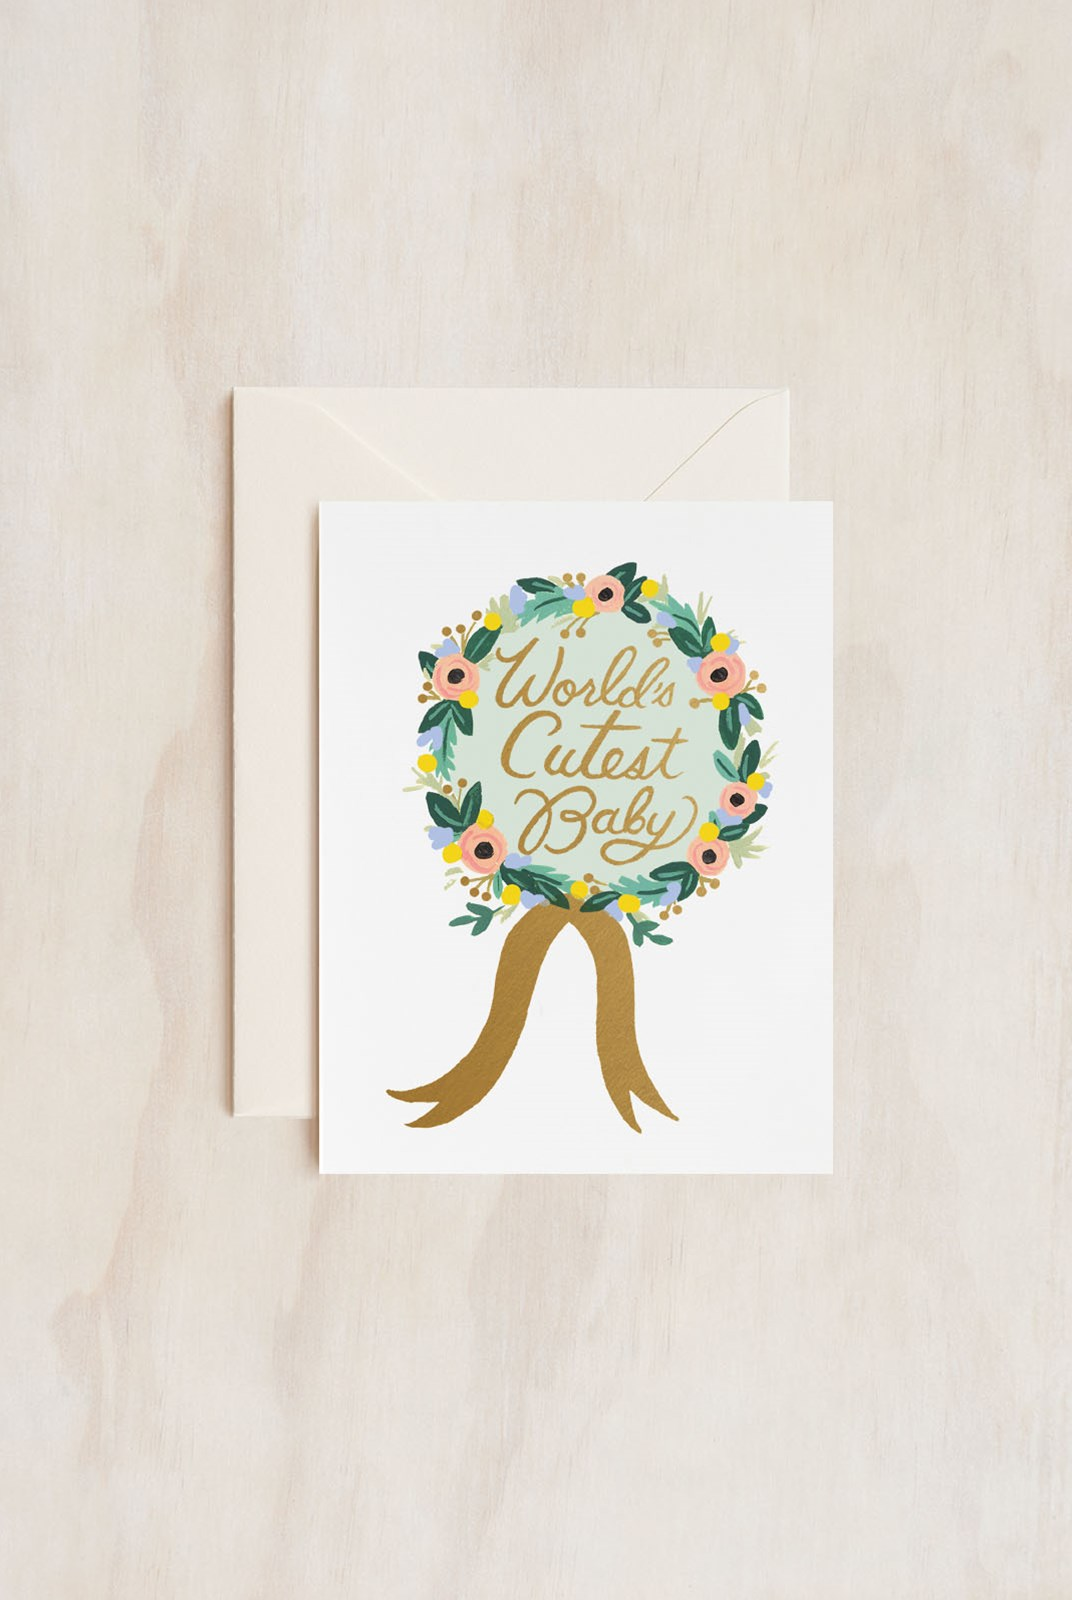 Rifle Paper Co - Single Card - World's Cutest Baby